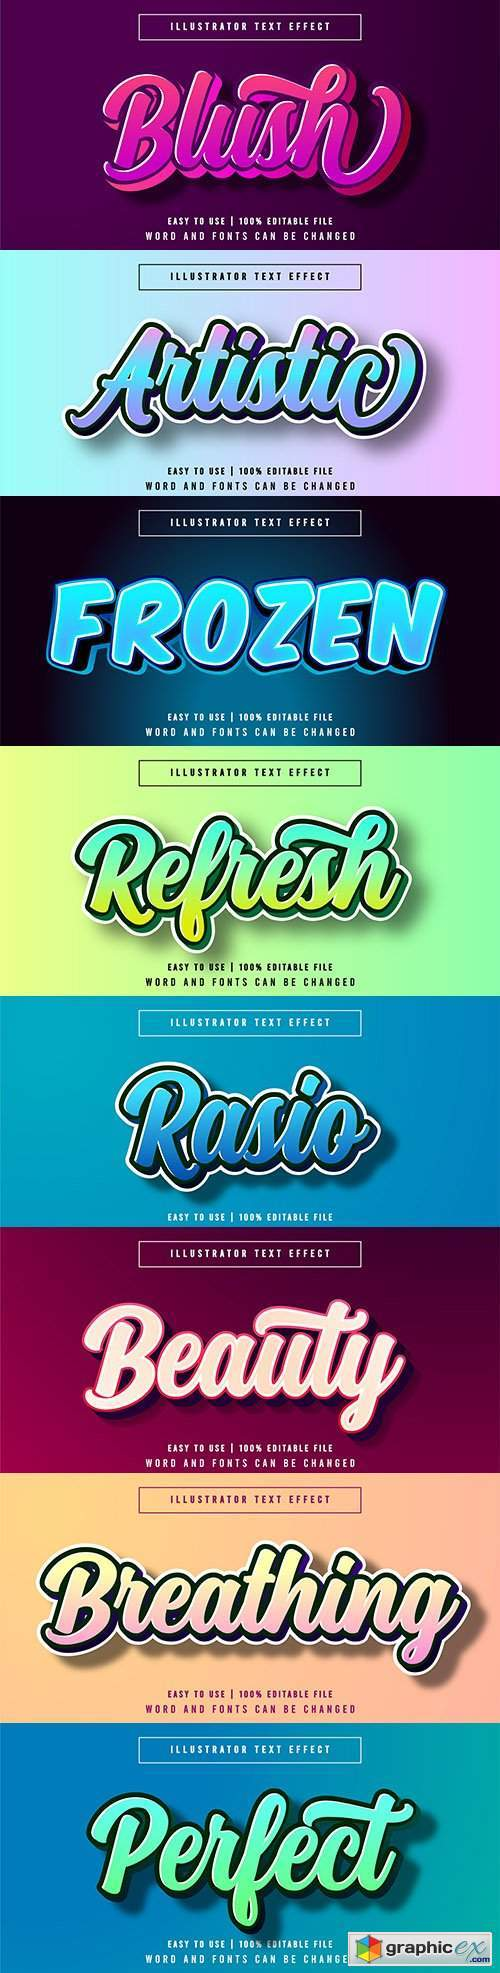 Editable font effect text collection illustration design 87